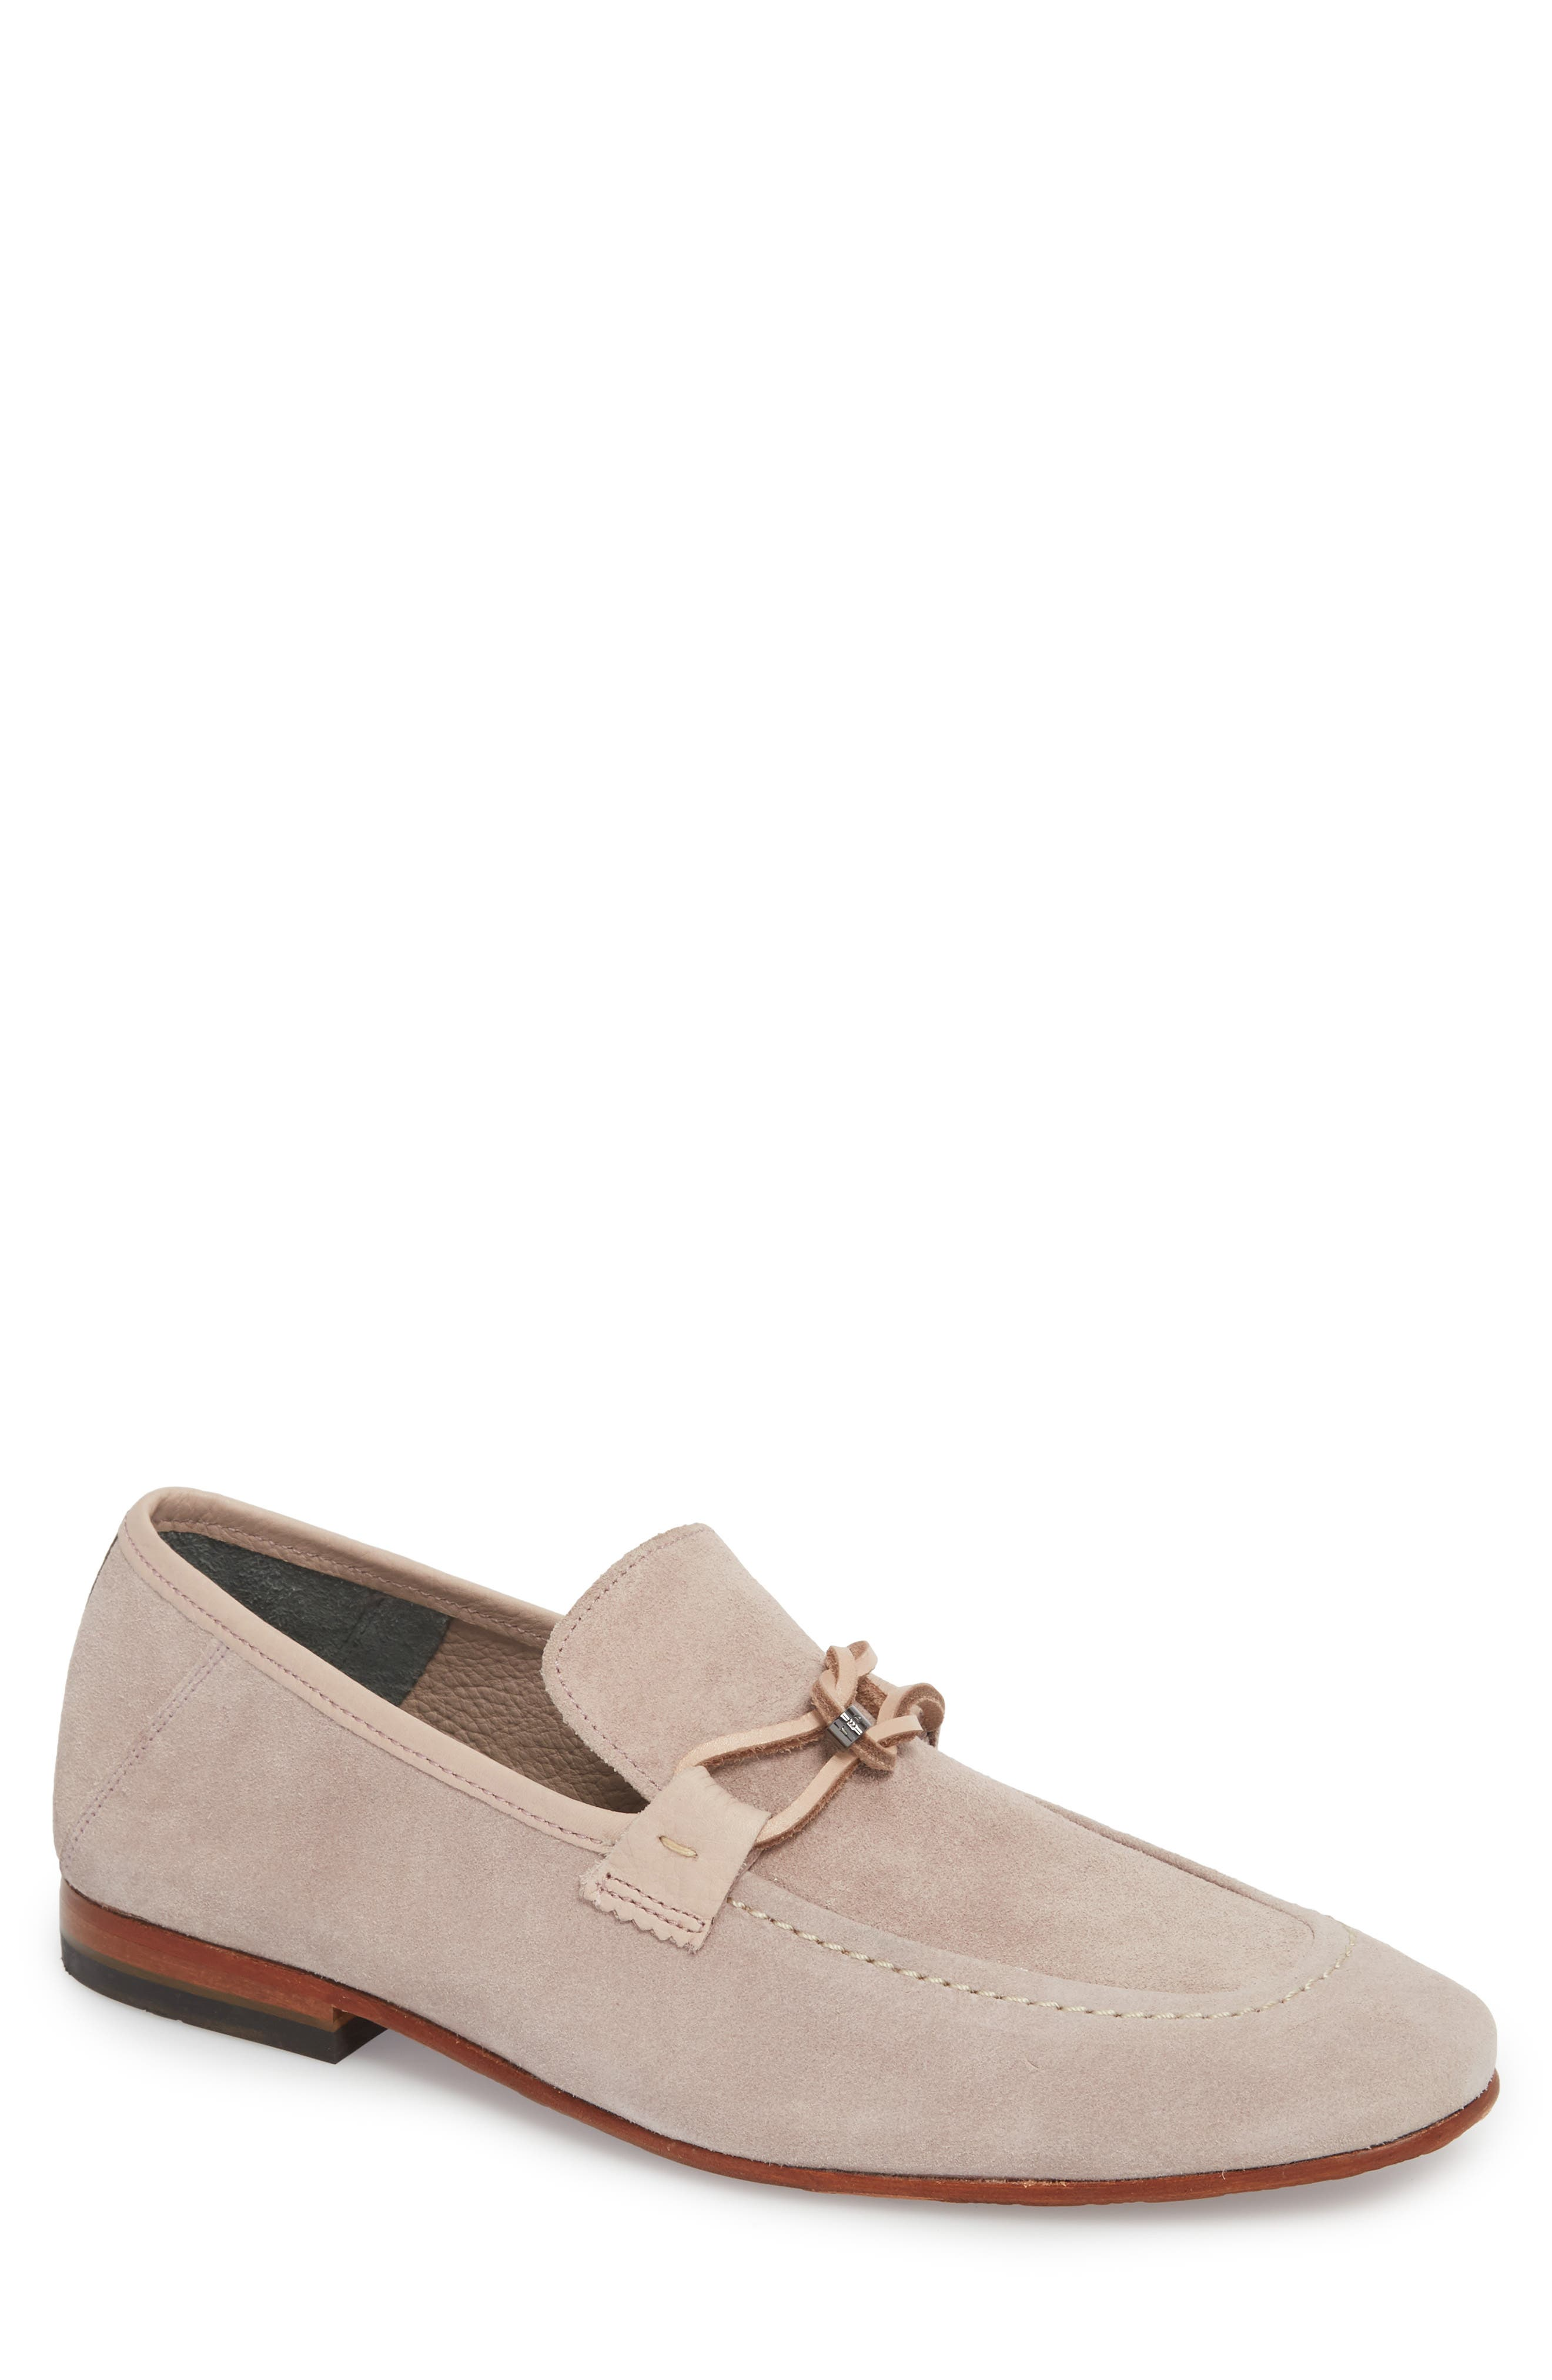 Hoppken Convertible Knotted Loafer,                             Main thumbnail 1, color,                             Light Pink Suede